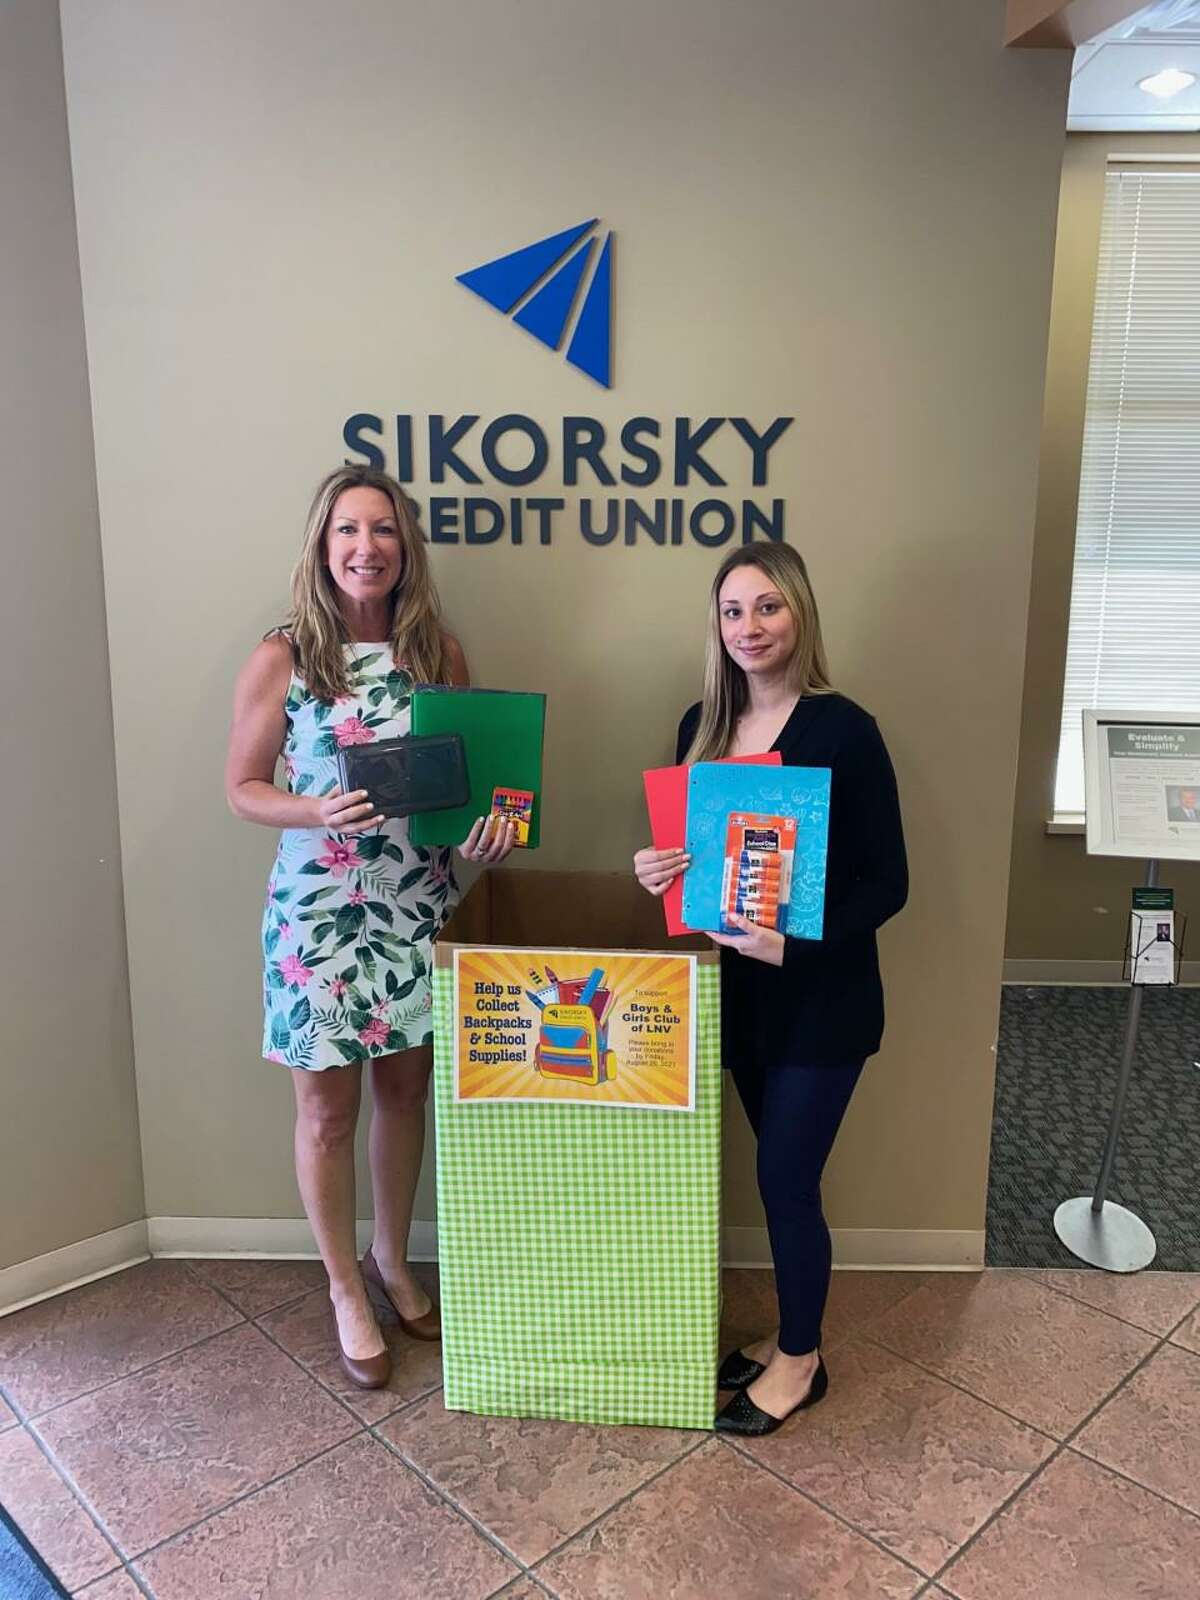 The Sikorsky Credit Union in Shelton recently organized Back-to-School drives at their branches to give back to children in their local communities. Pictured from the left to the right are: The Chief Executive Officer, (CEO), of the Boys & Girls Club of the Lower Naugatuck Valley, Shaye A. Roscoe, and the Branch Manager of the Sikorsky Credit Union's Branch office in Shelton, Maxine Jones.